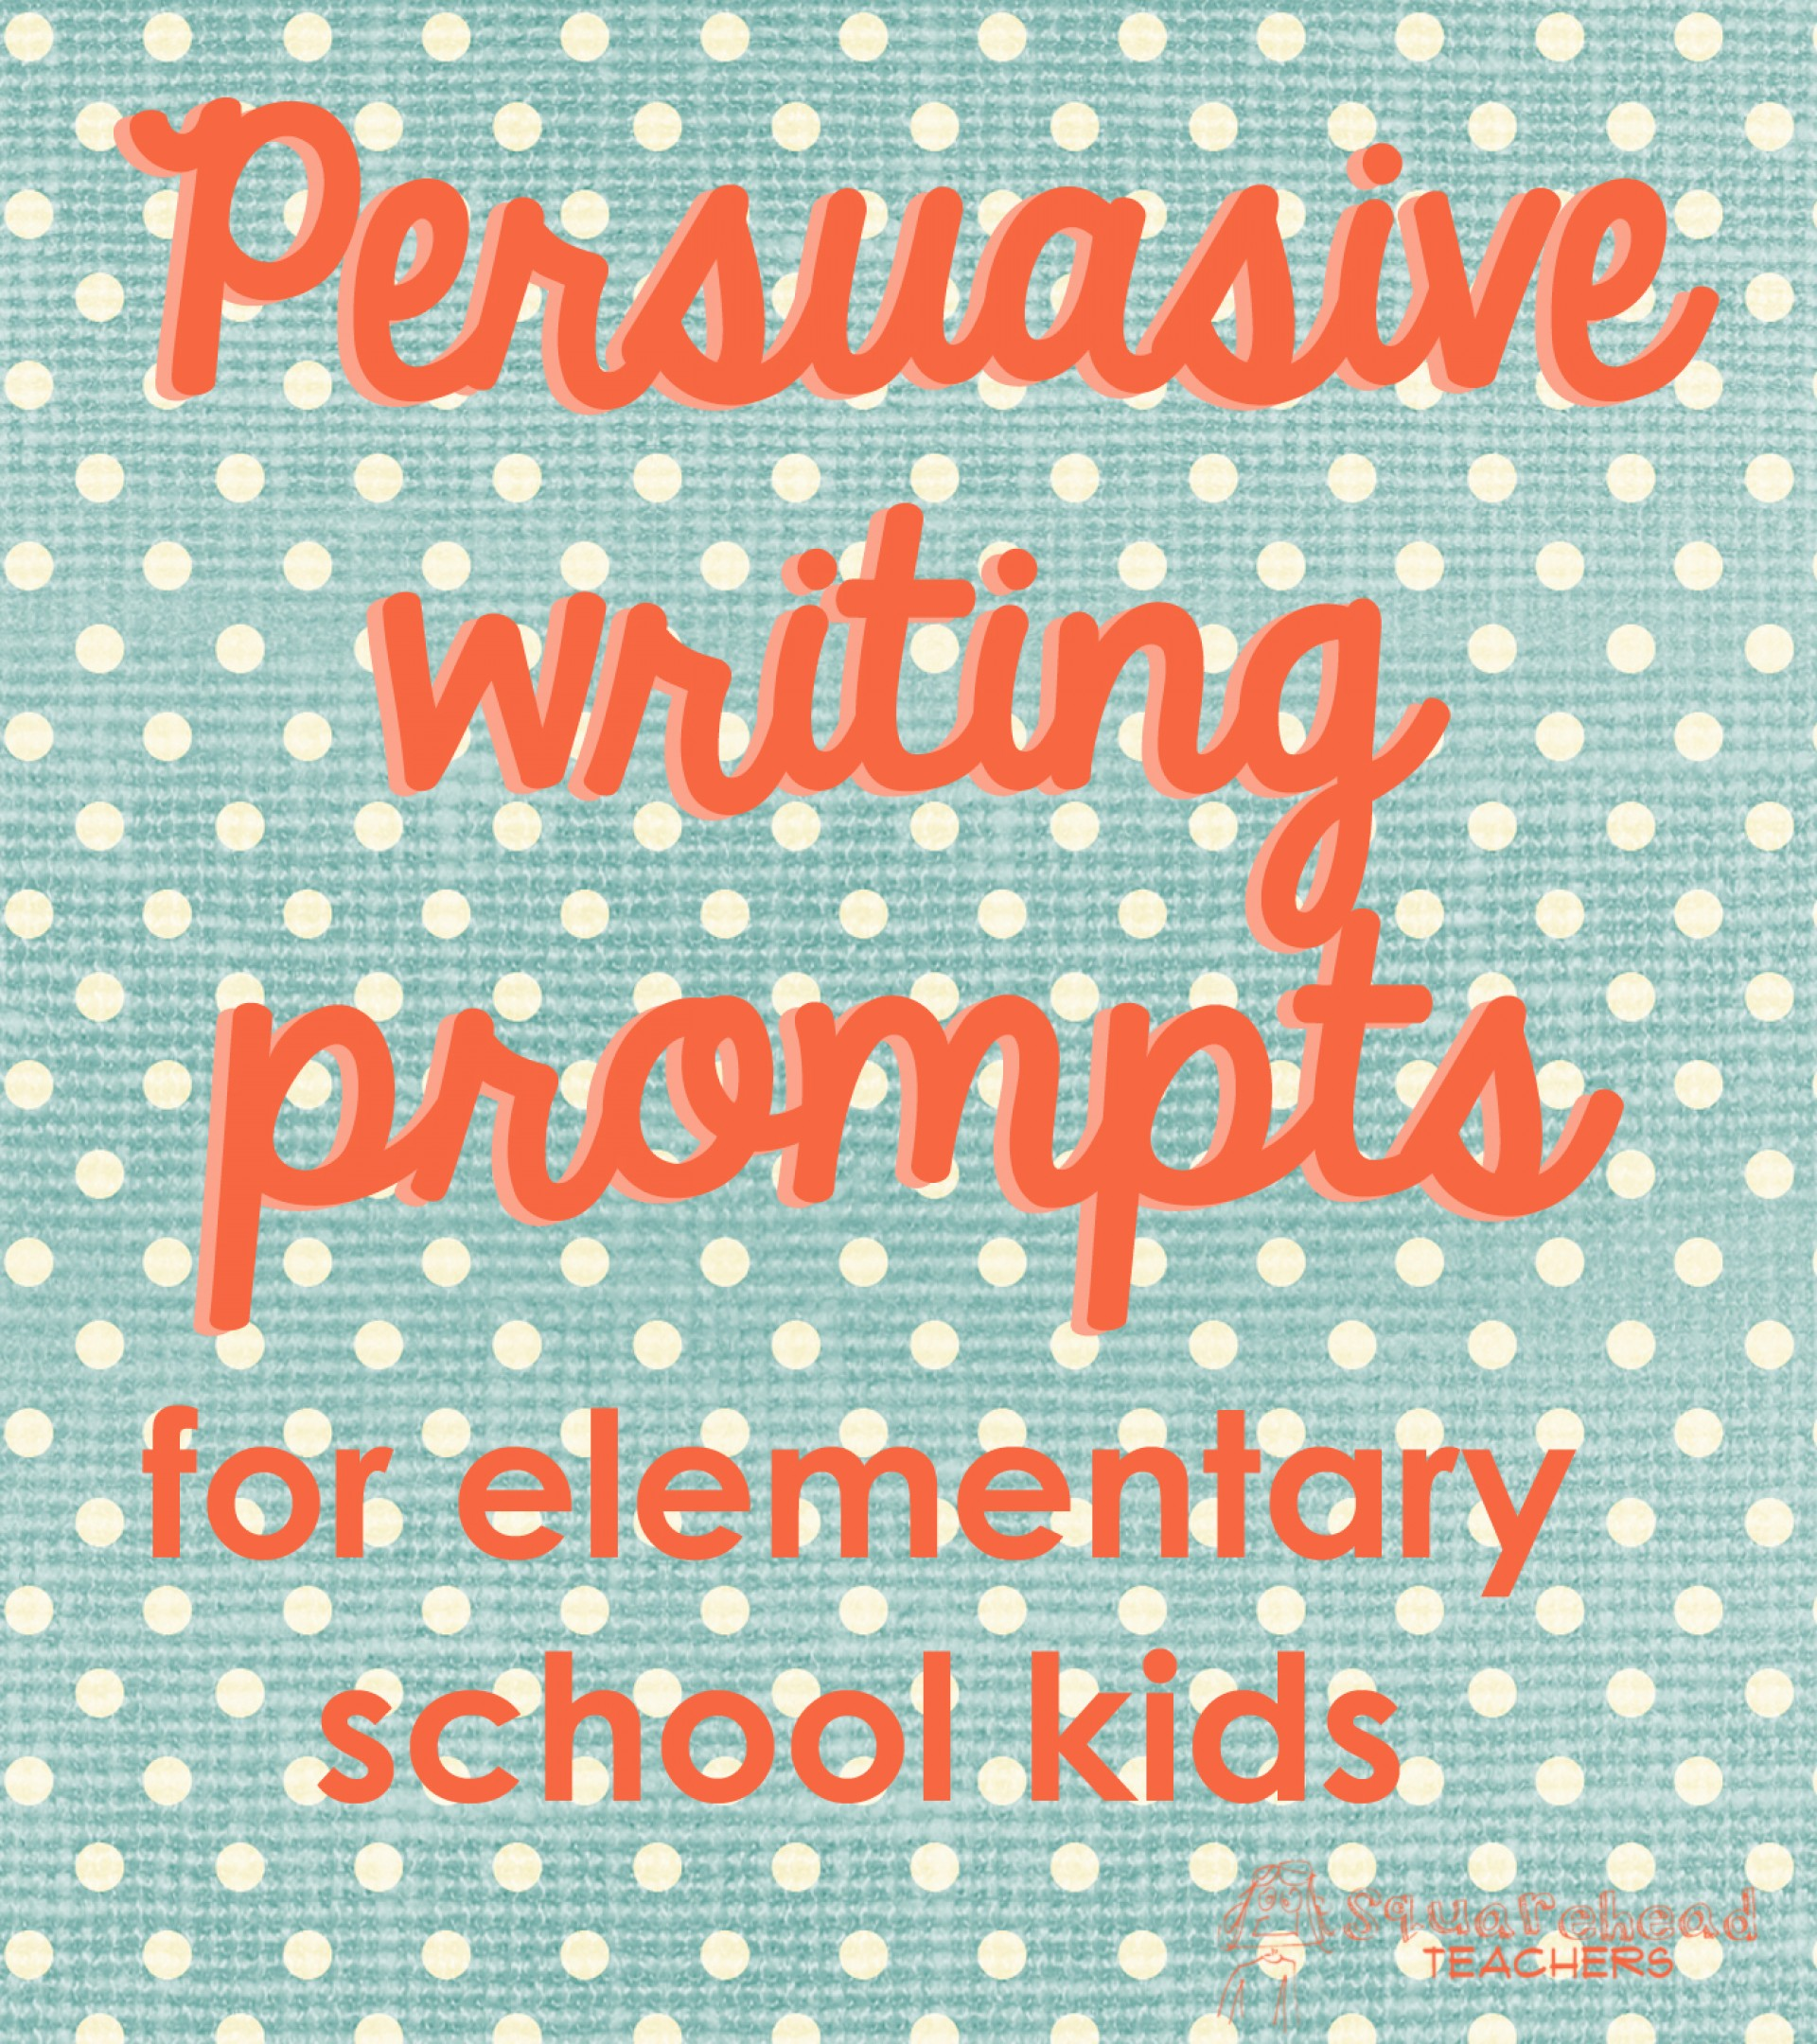 017 Persuasive Writing Prompts For Elementary School Kids Essay Example Stupendous High Tumblr Expository Staar Creative 1920